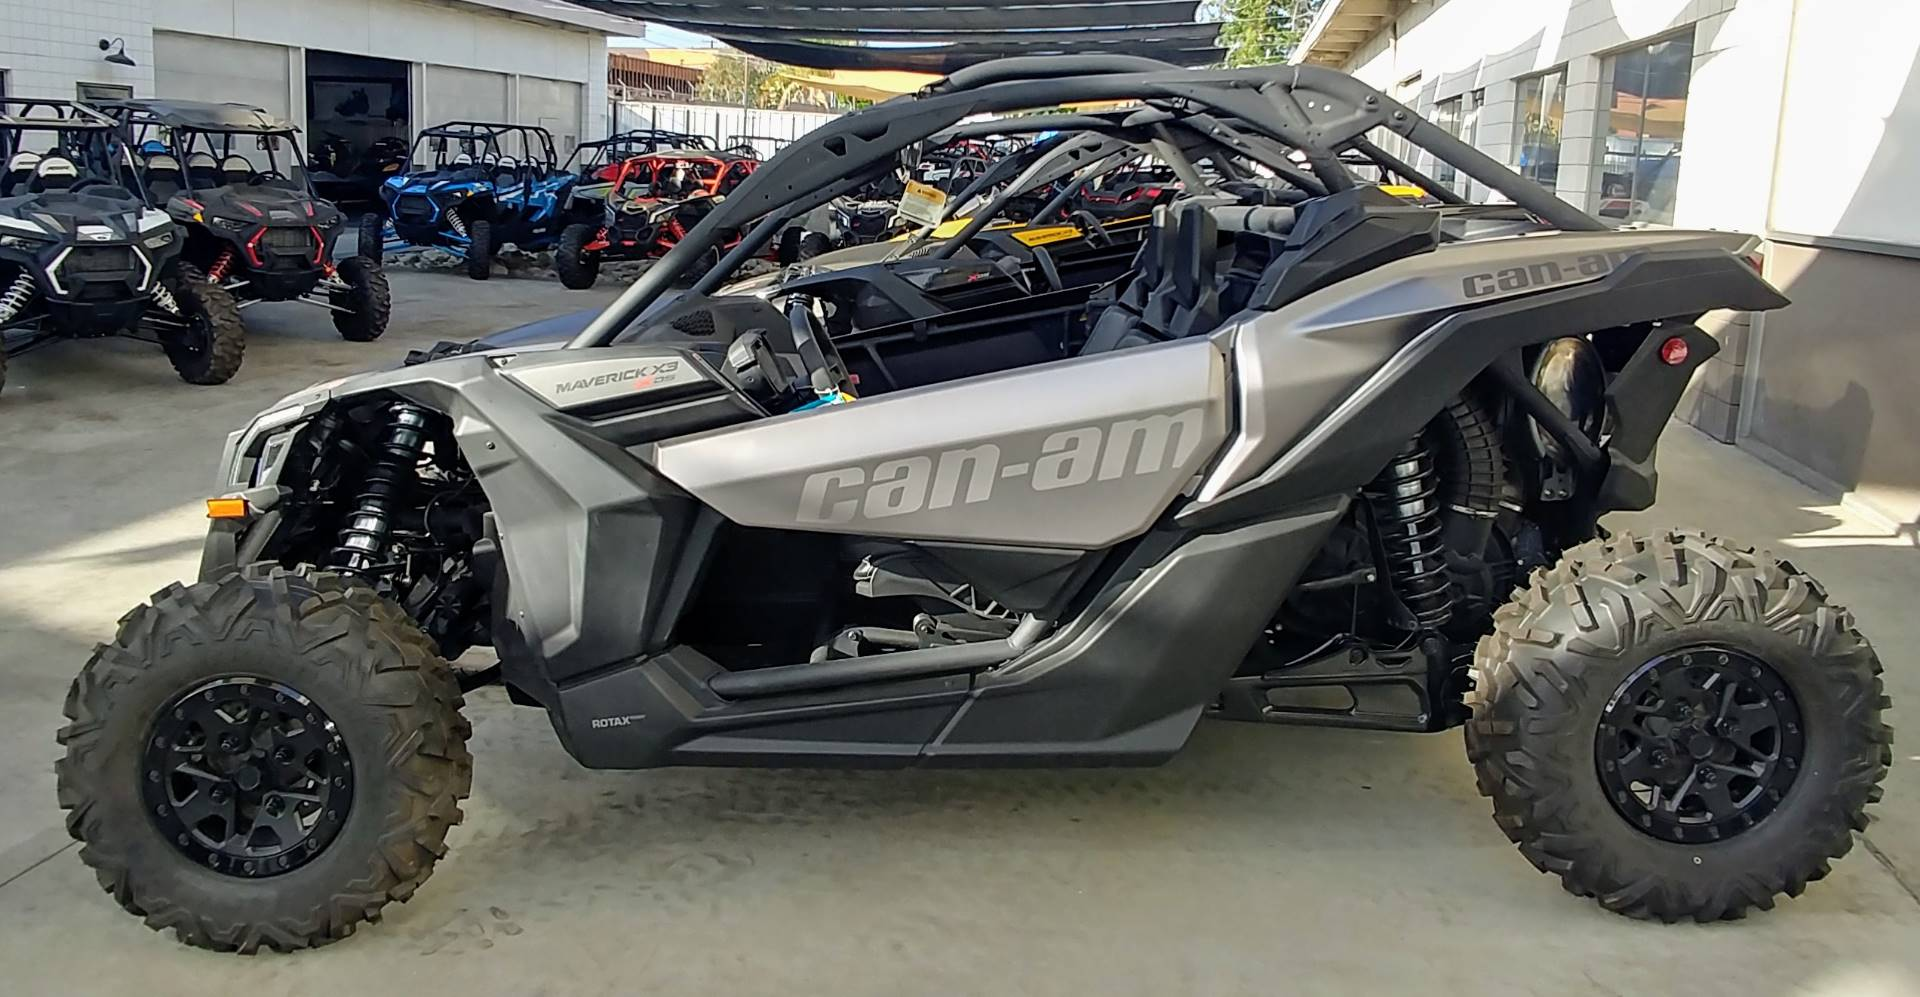 2018 Can-Am Maverick X3 X ds Turbo R for sale 4990